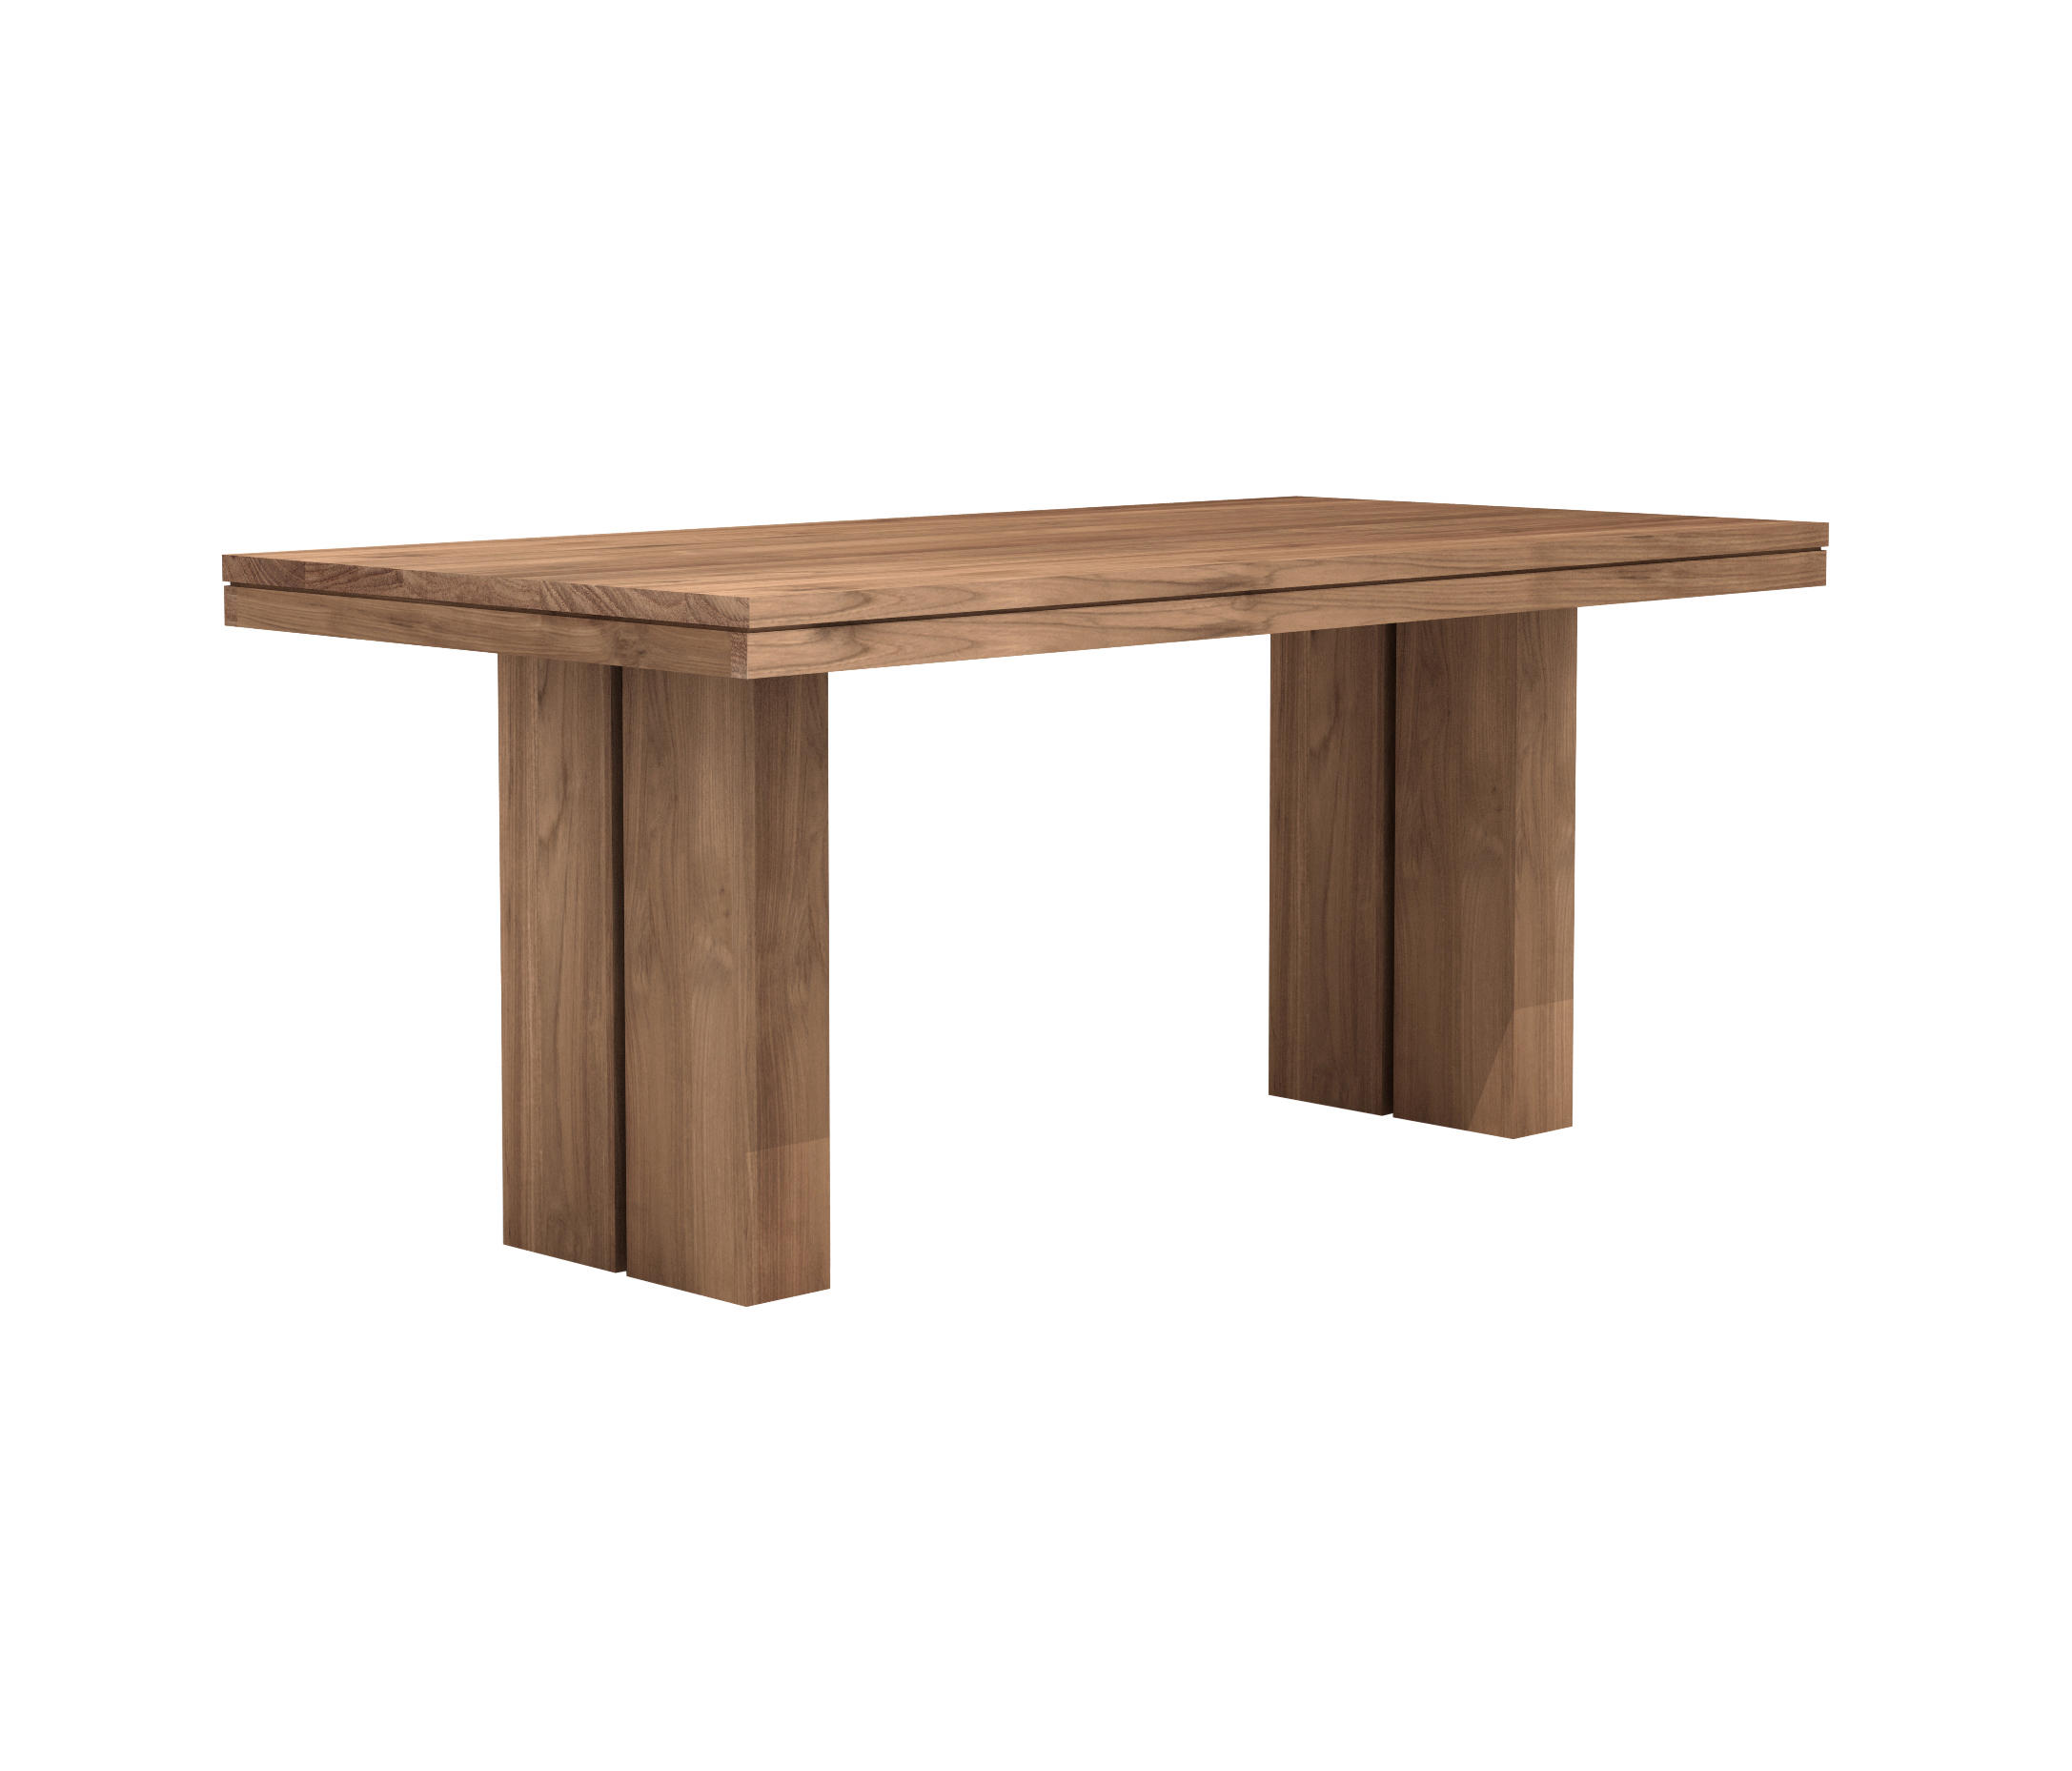 Homebase Dining Table Choice Image Dining Table Ideas : teak double tge 012067 dining table 180x90x78 p b from sorahana.info size 2174 x 1858 jpeg 139kB